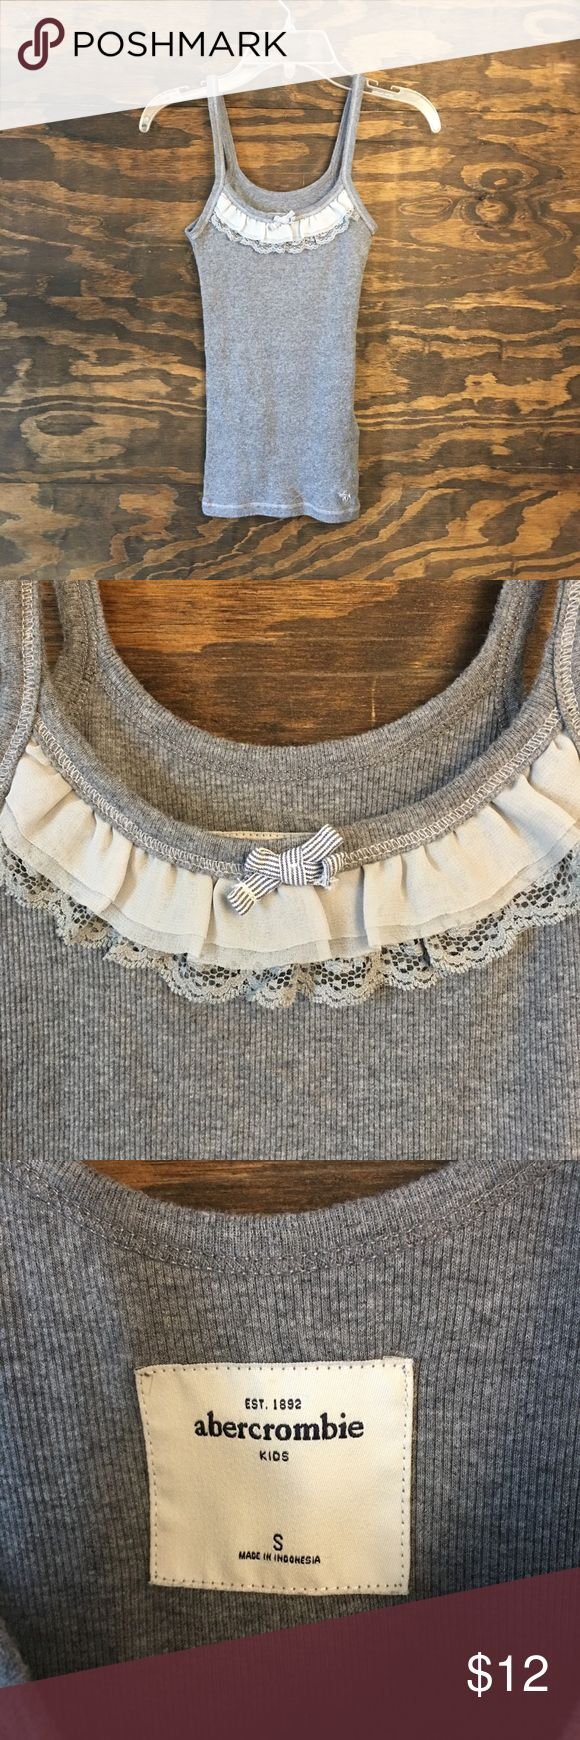 Abercrombie Girls Gray Tank Size Small Abercrombie & Fitch Gray Tank w/ White Lace Trim Abercrombie & Fitch Shirts & Tops Tank Tops